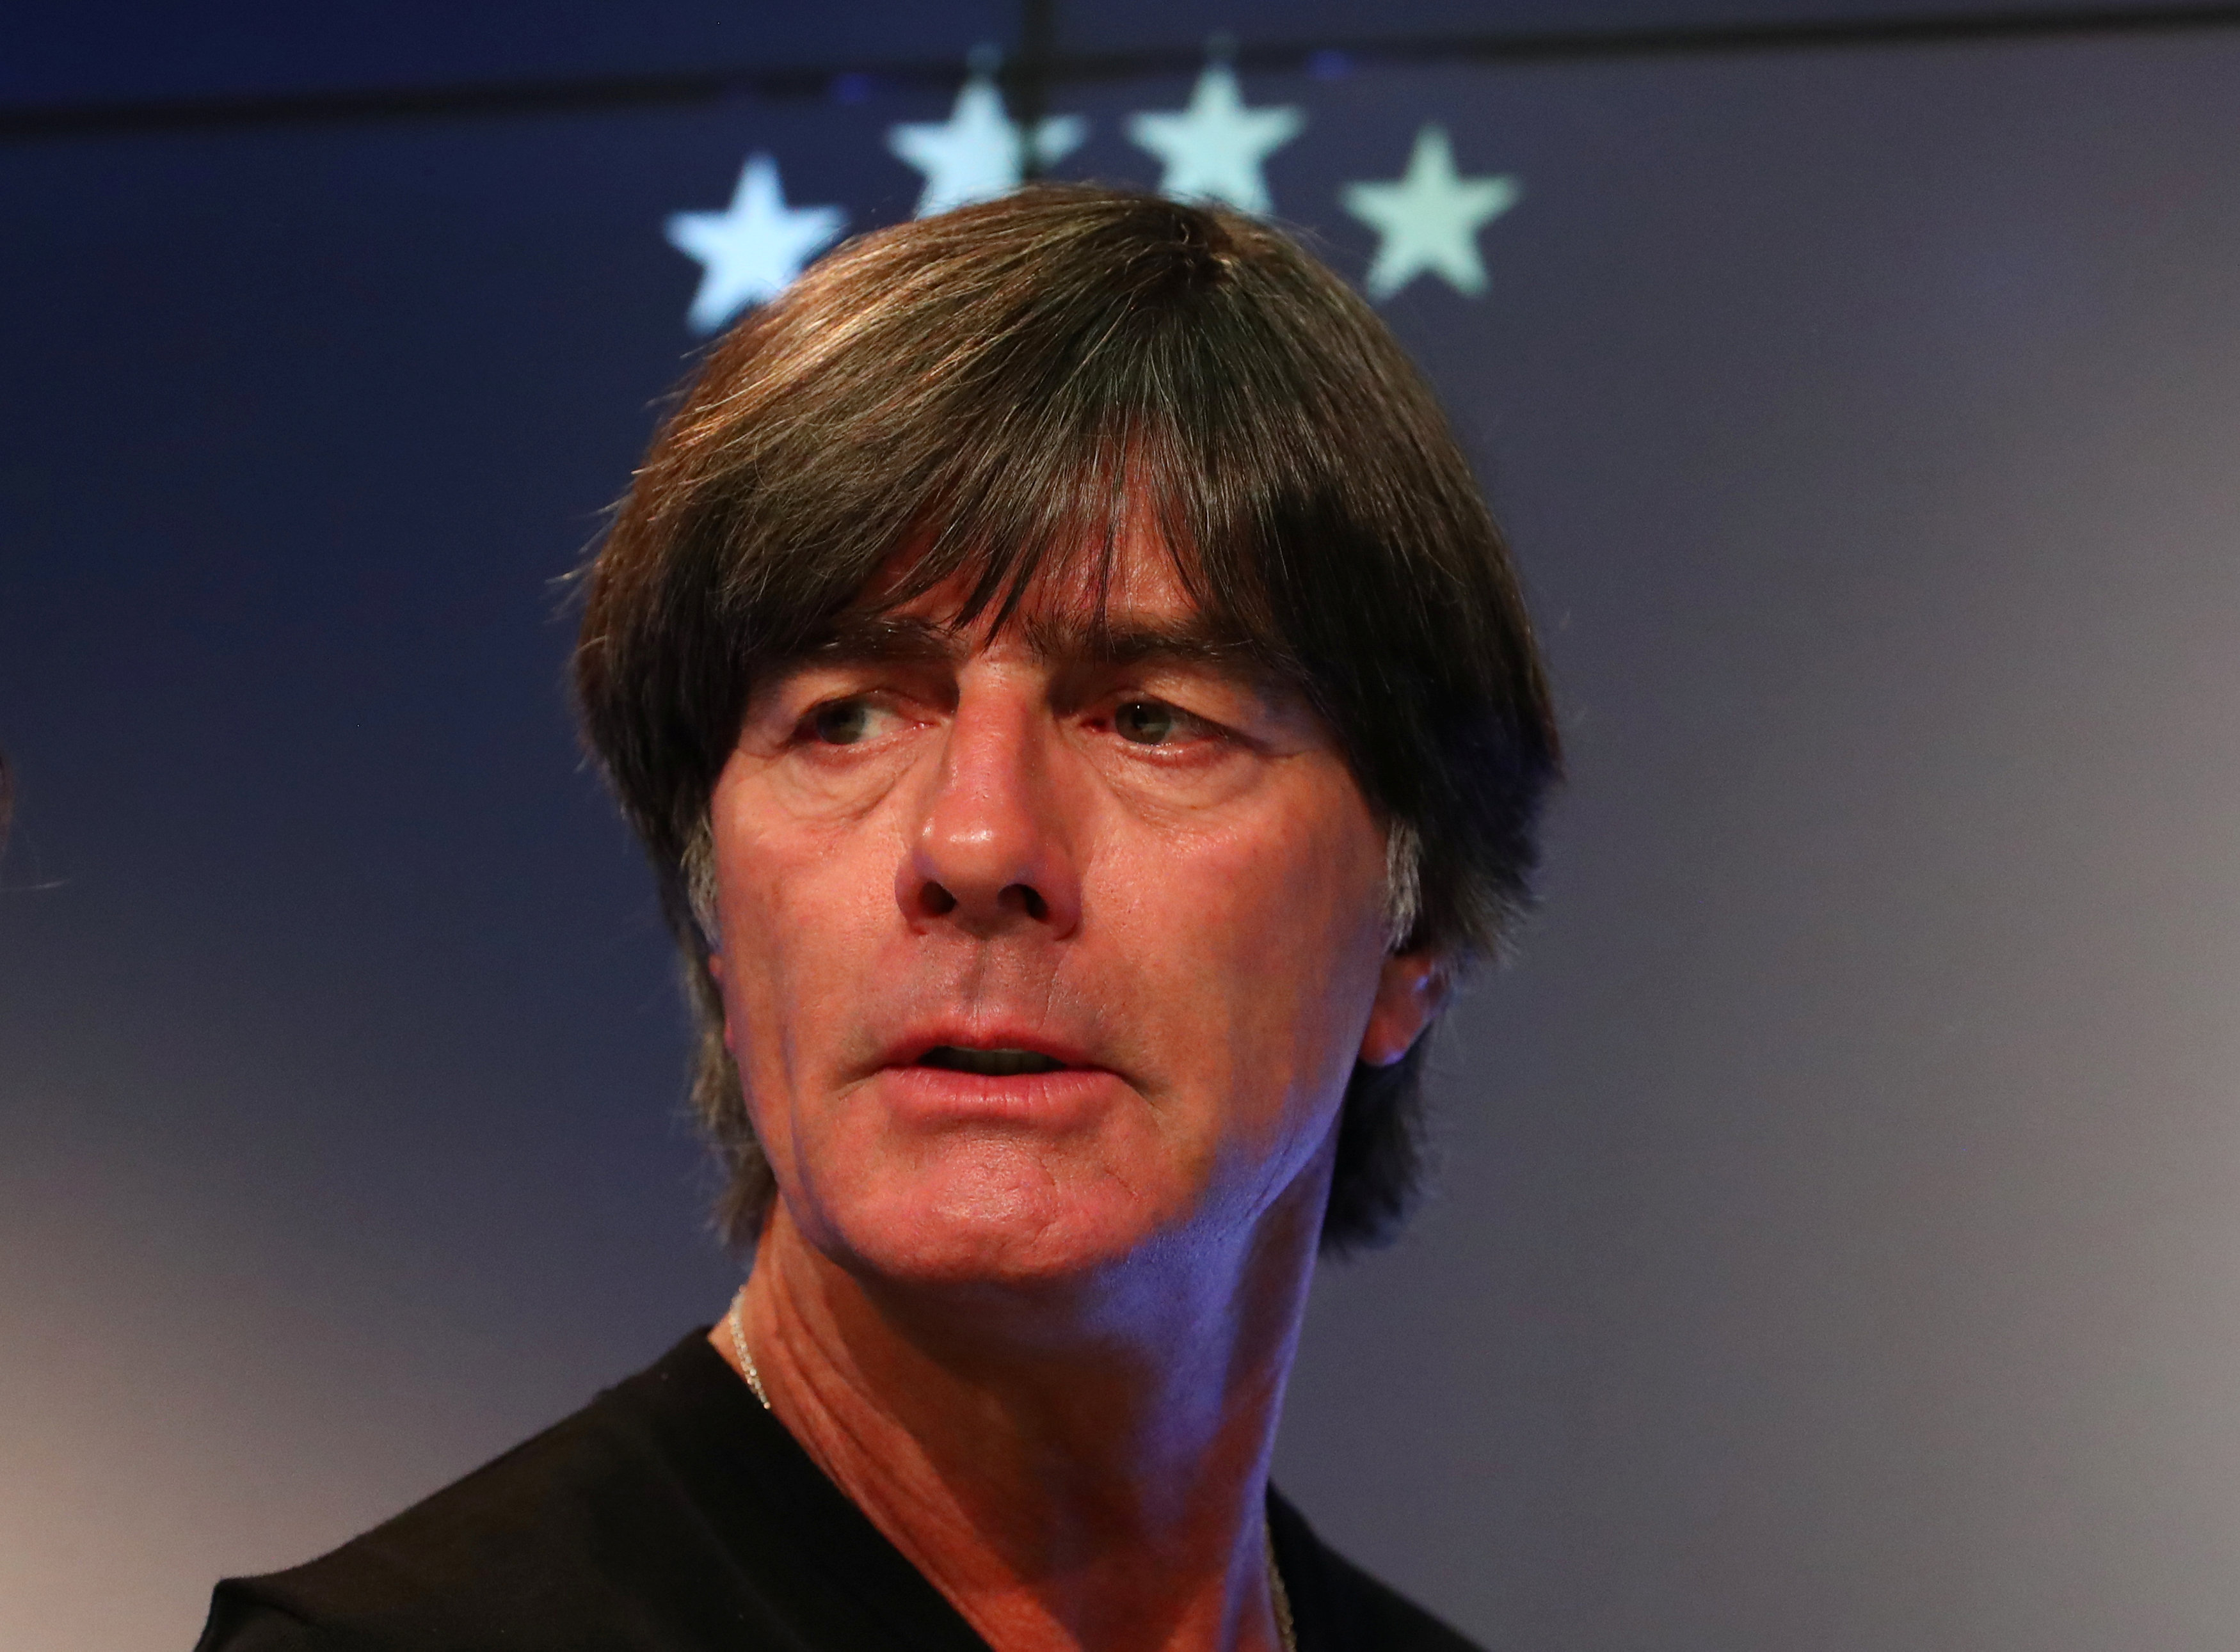 Football: Germany's Loew repeatedly snubbed by Ozil after national team exit